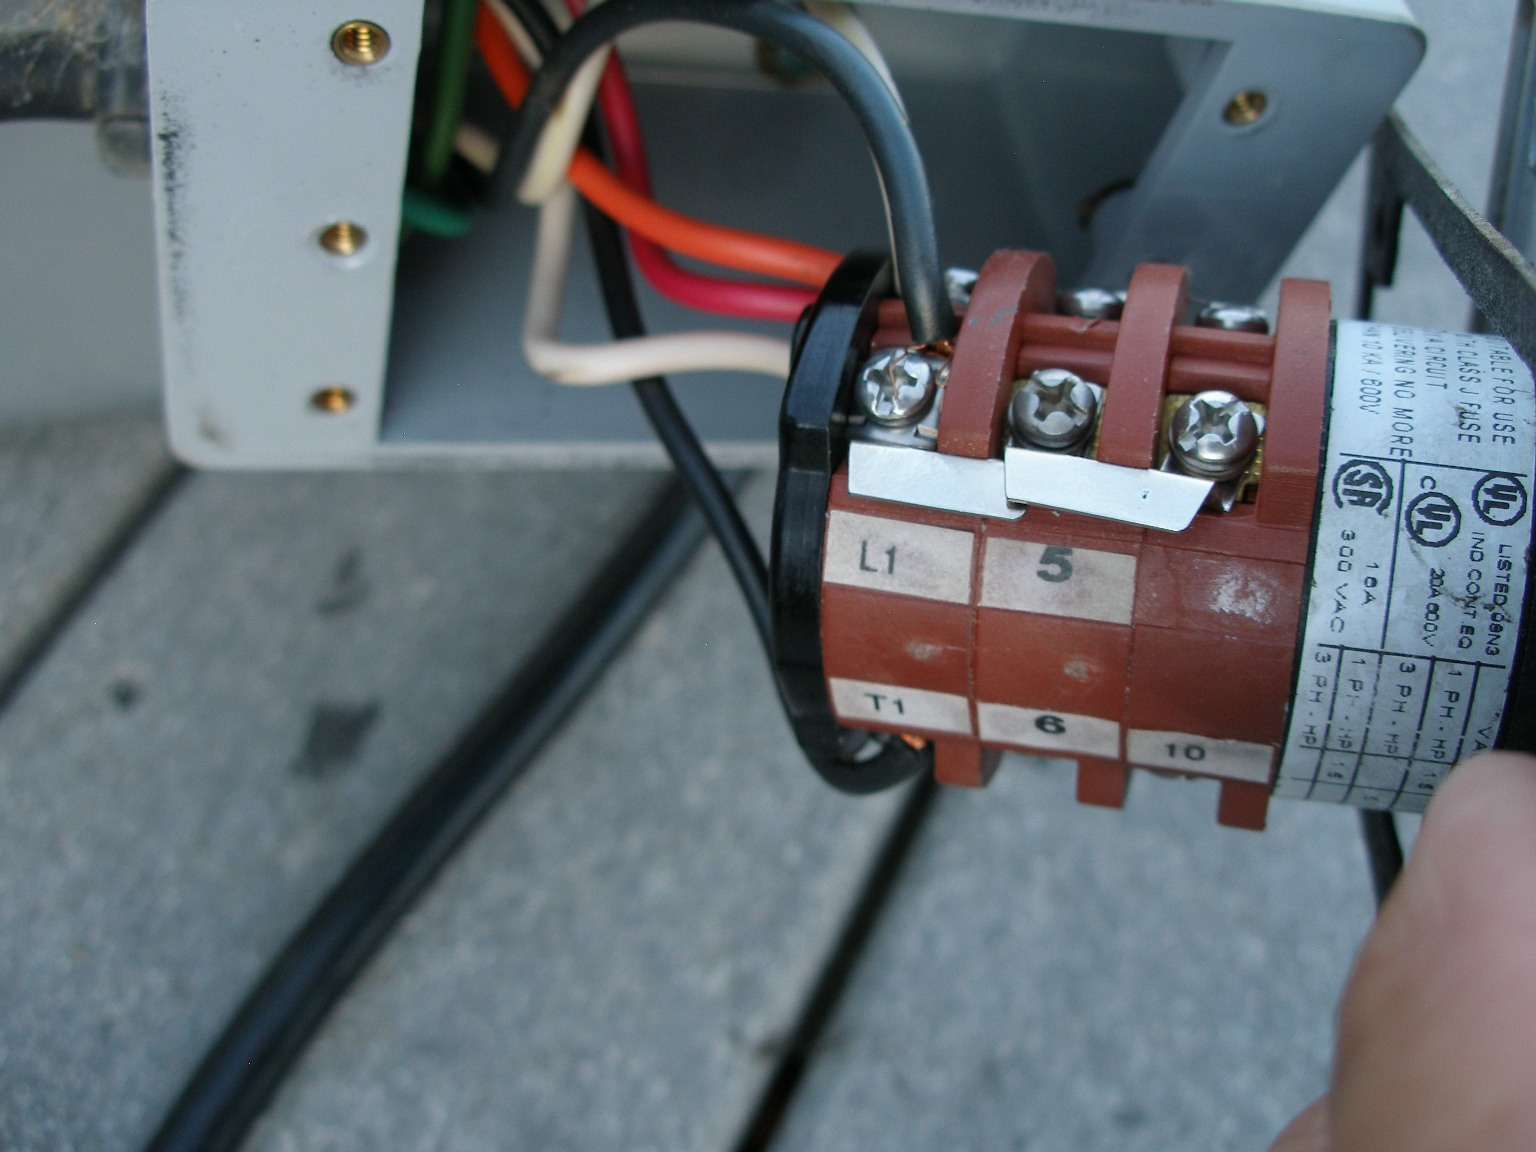 boat lift leveler switch wiring diagram bremis boat lift reversing switch wiring diagram the motor on my boat lift quit. it was a ao motor, open ...